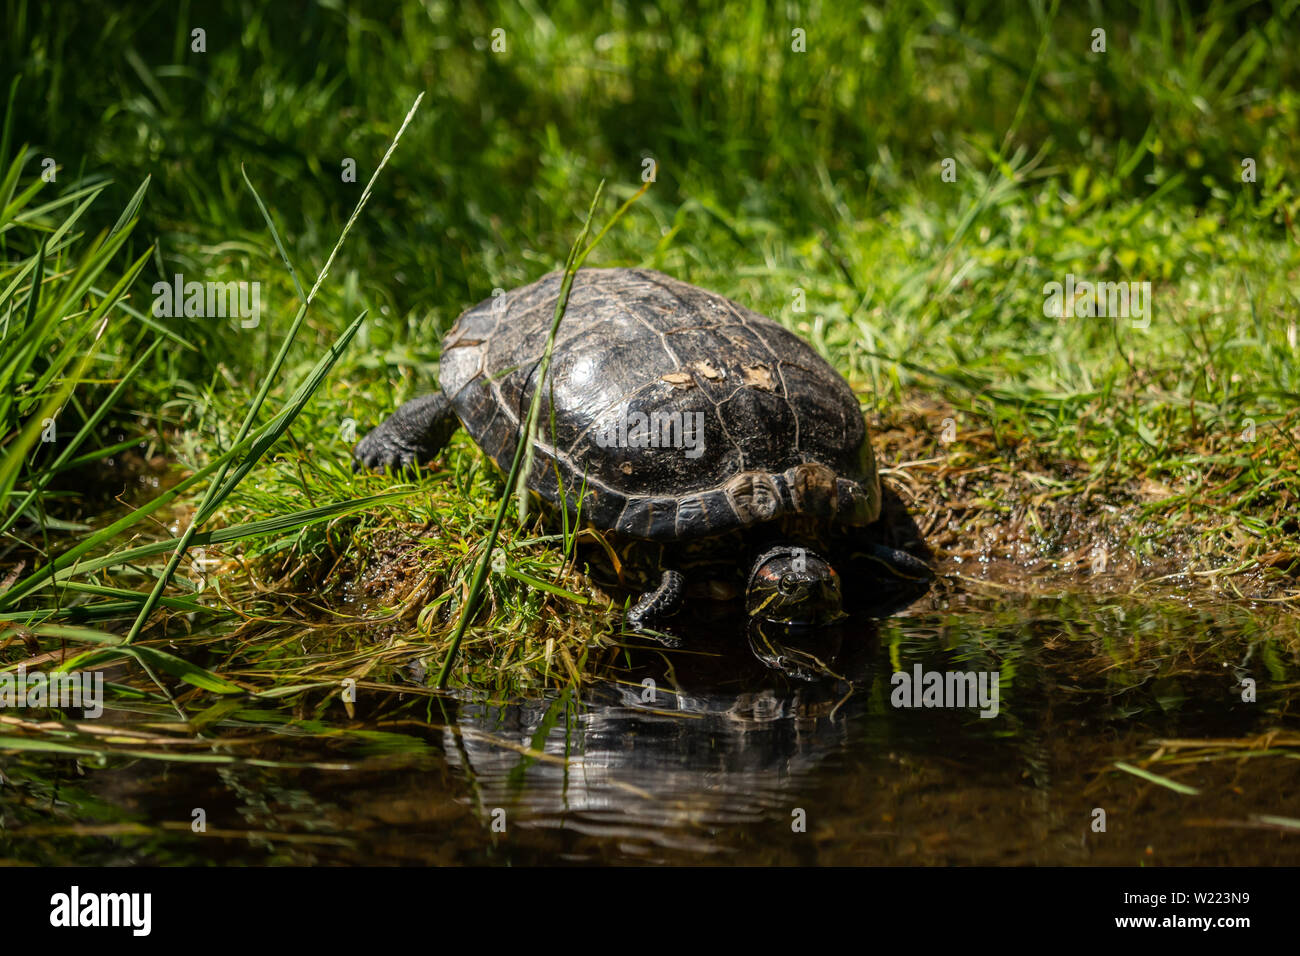 A turtle out in the grass by the water - Stock Image